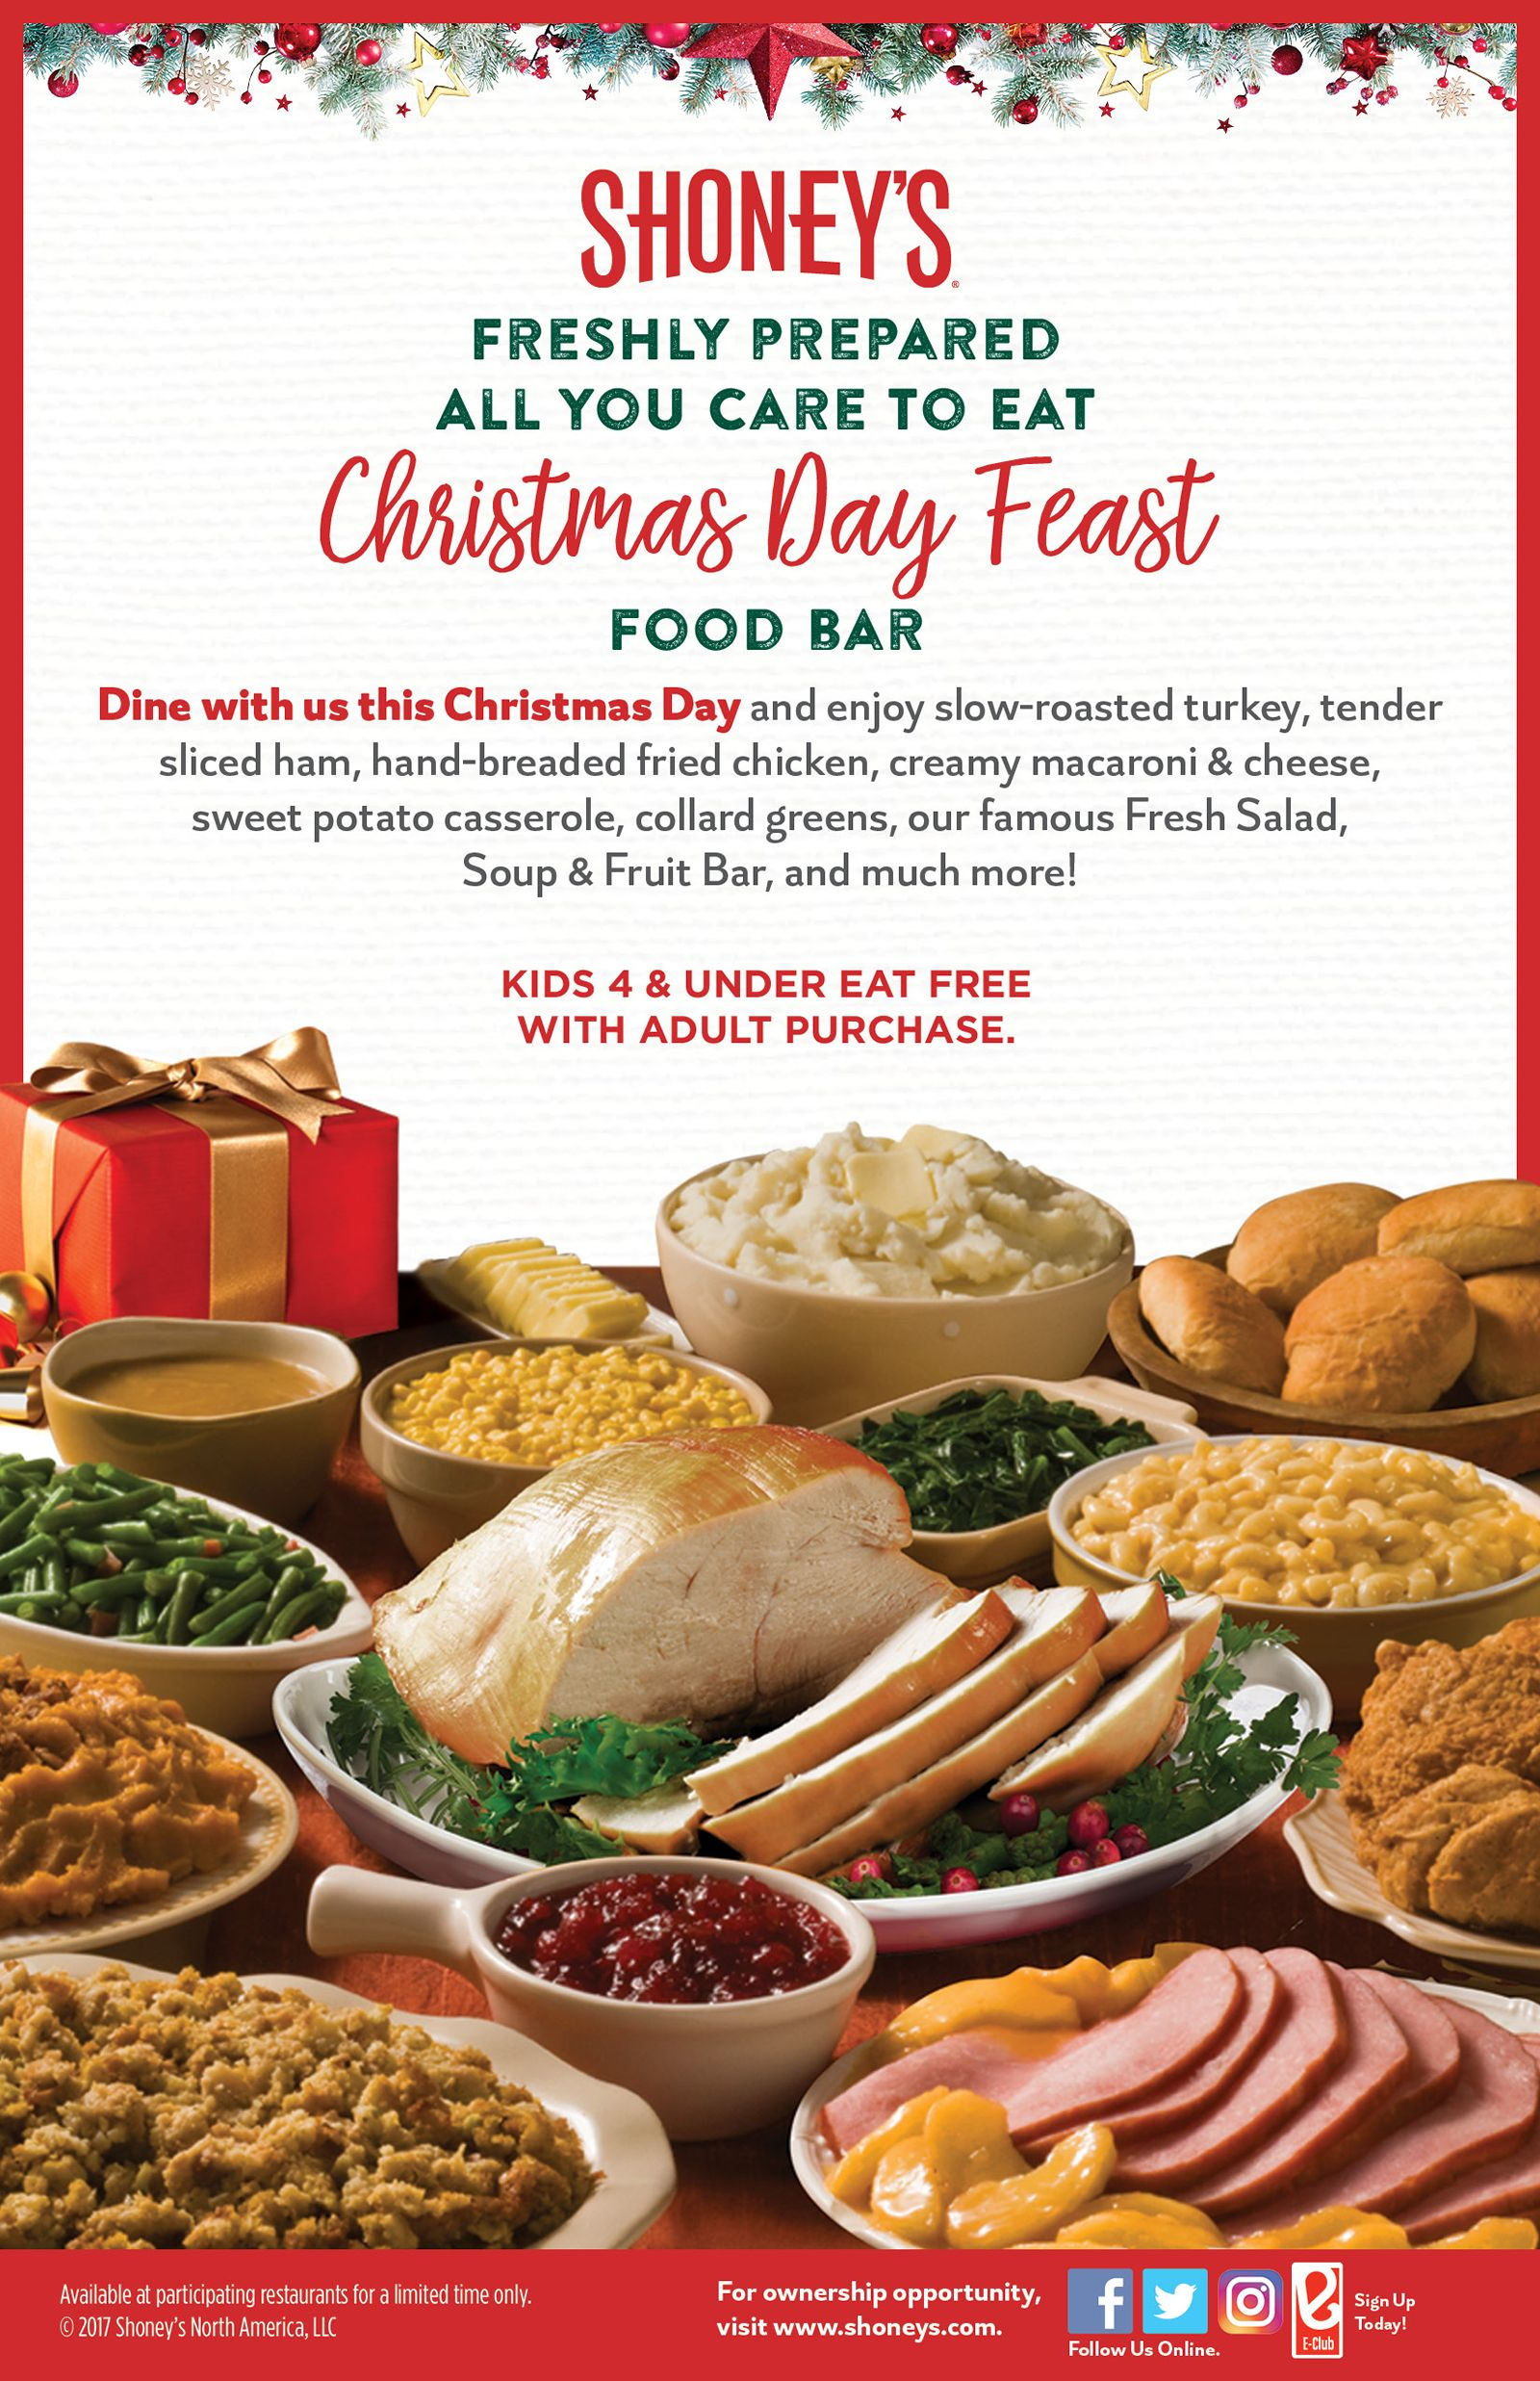 Shoneys Christmas Day Feast Starts At 1299 Kids 4 And Under Eat